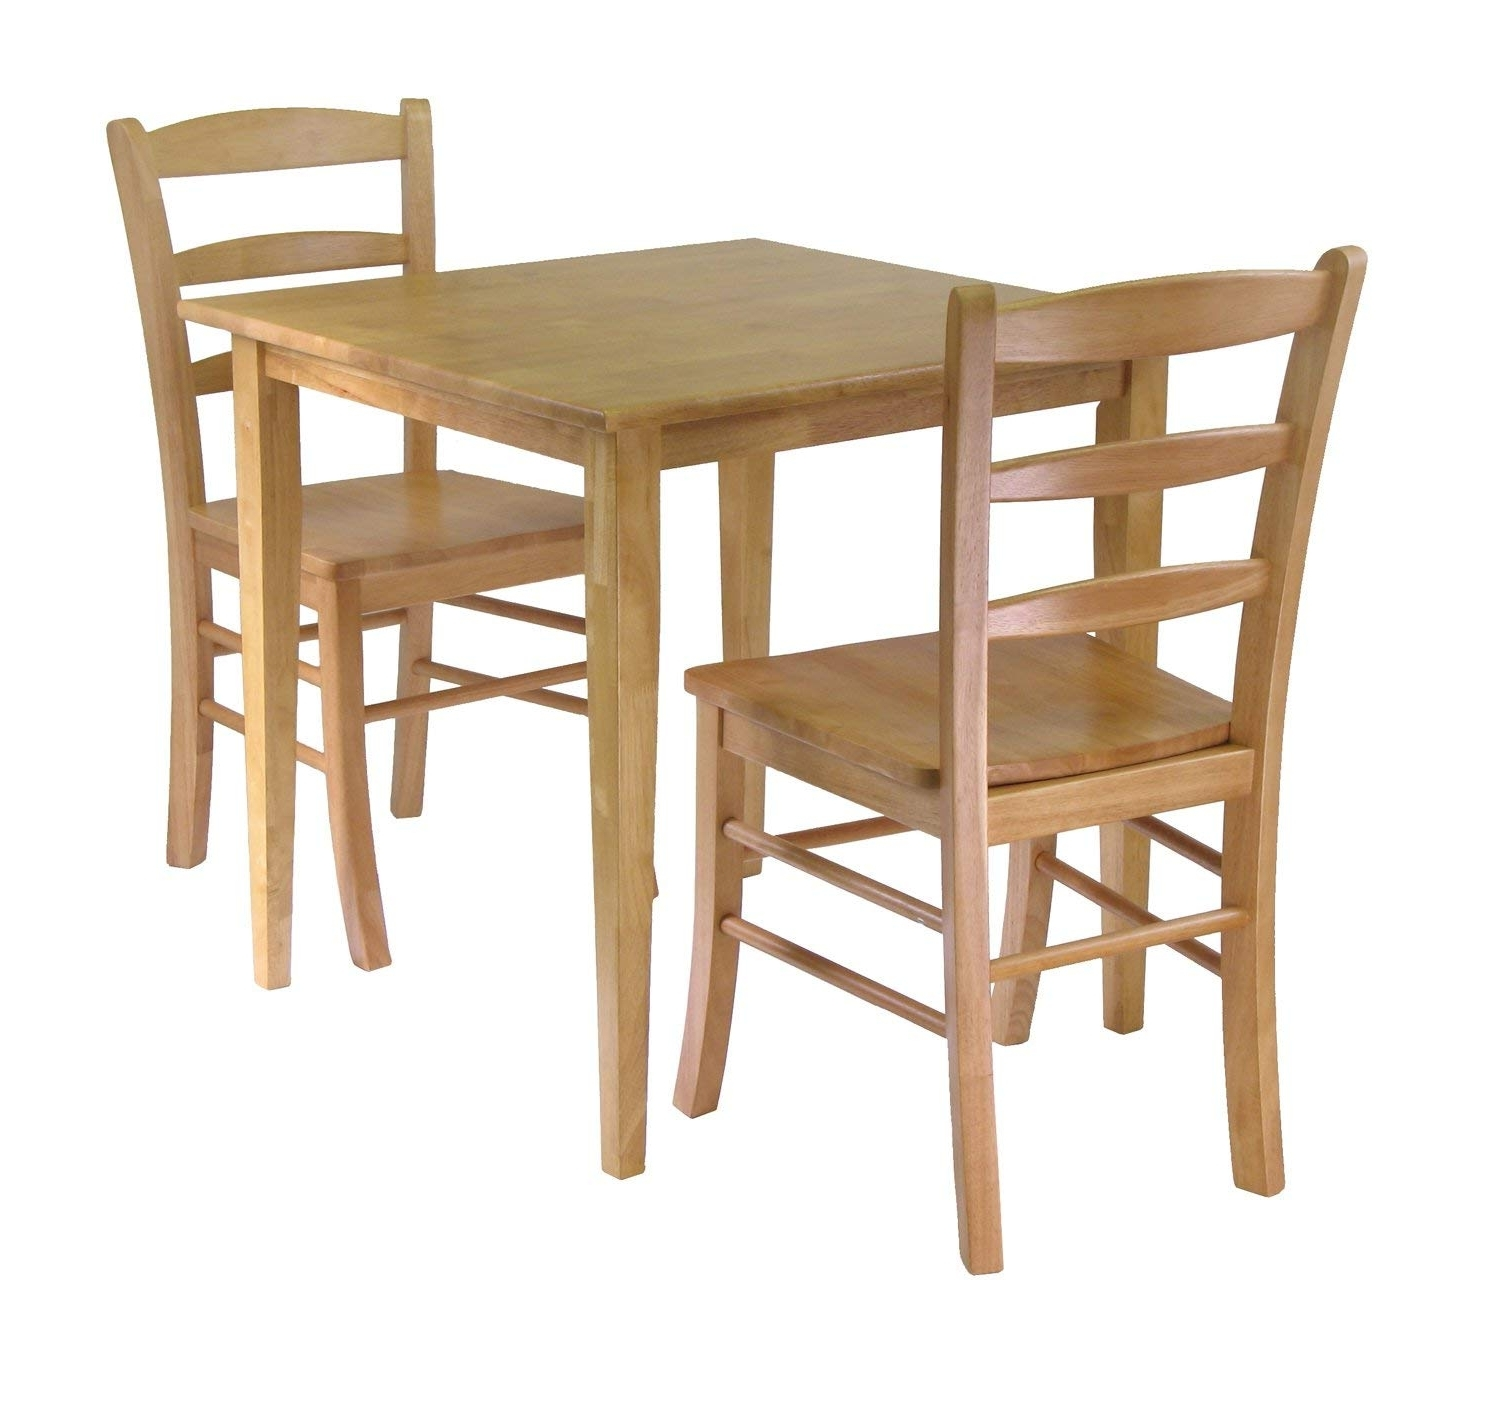 Amazon – Winsome Groveland 3 Piece Wood Dining Set, Light Oak Intended For Most Up To Date Oak Dining Tables Sets (View 18 of 25)